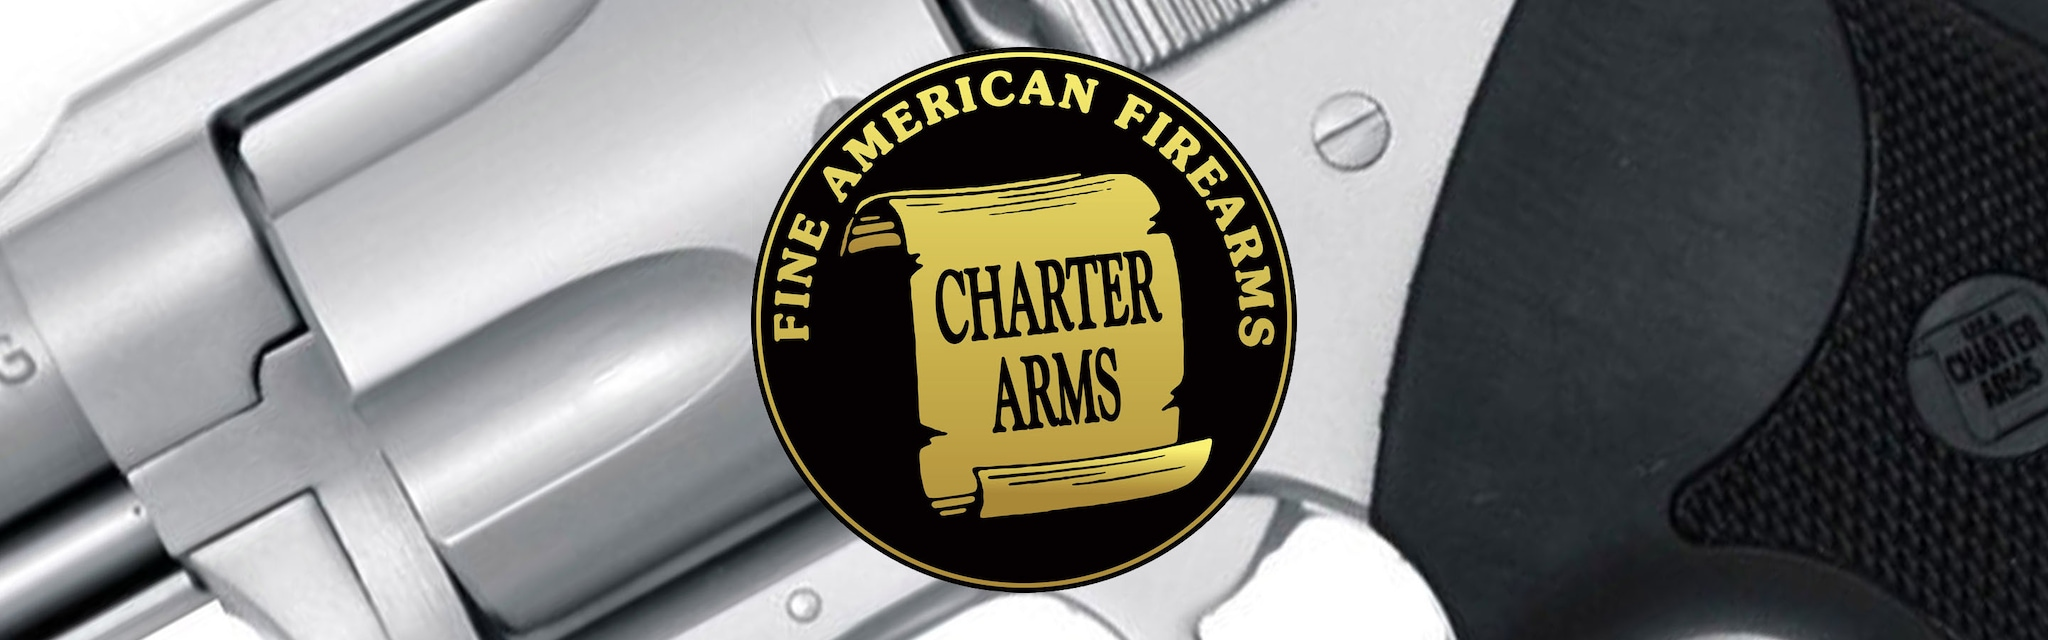 Charter Arms Brand Banner